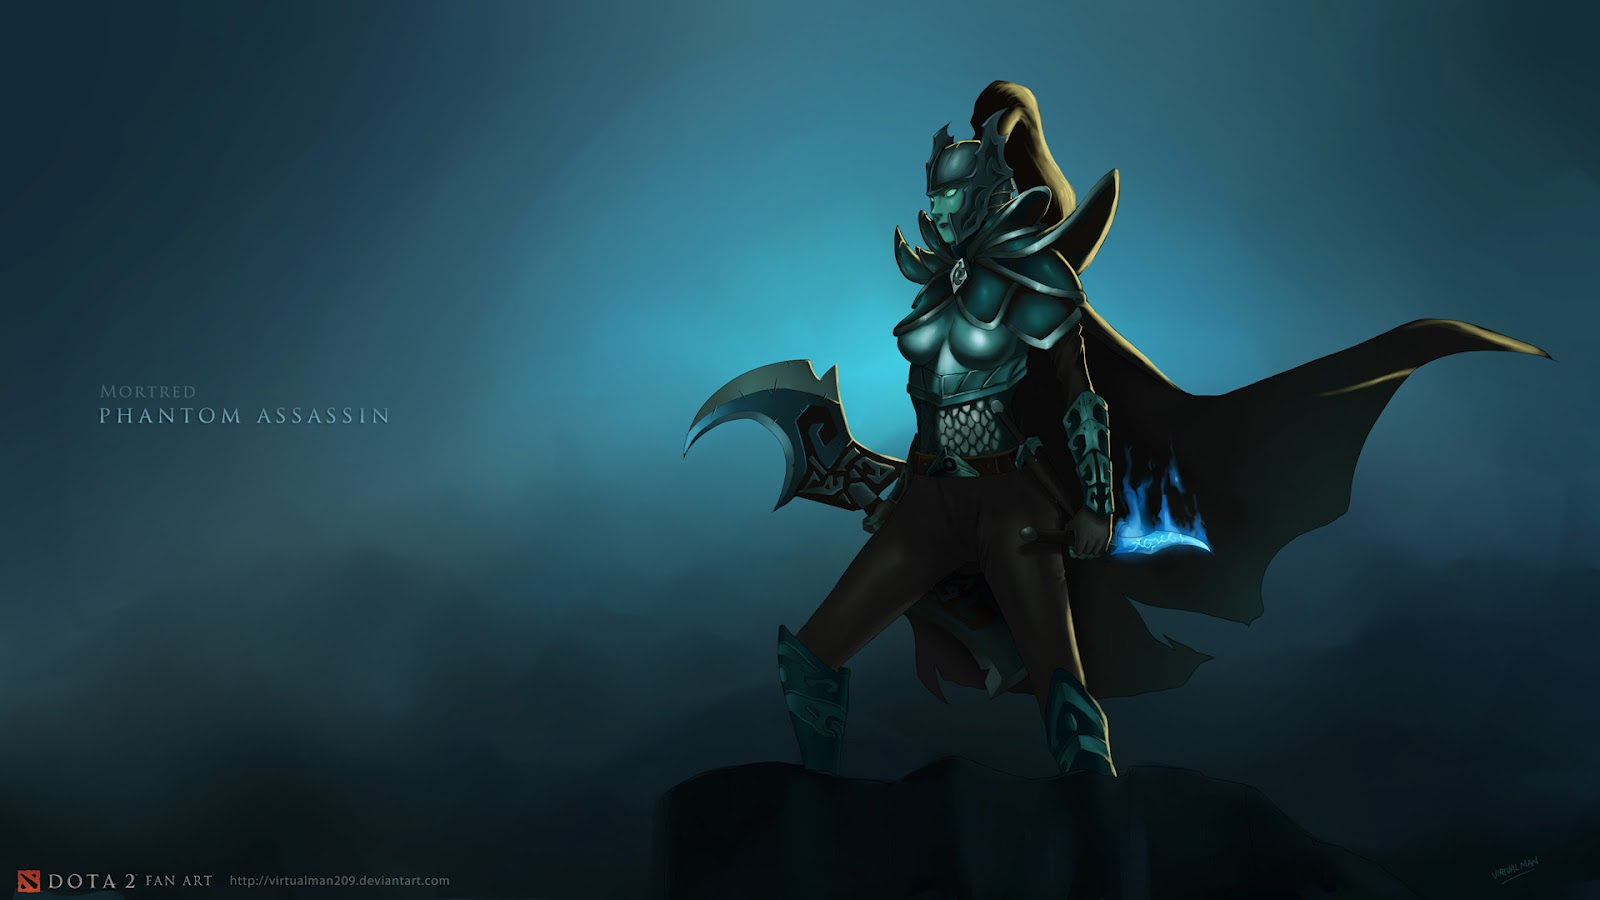 DOTA 2. Res: 1600x900 / Size:93kb. Views: 134831